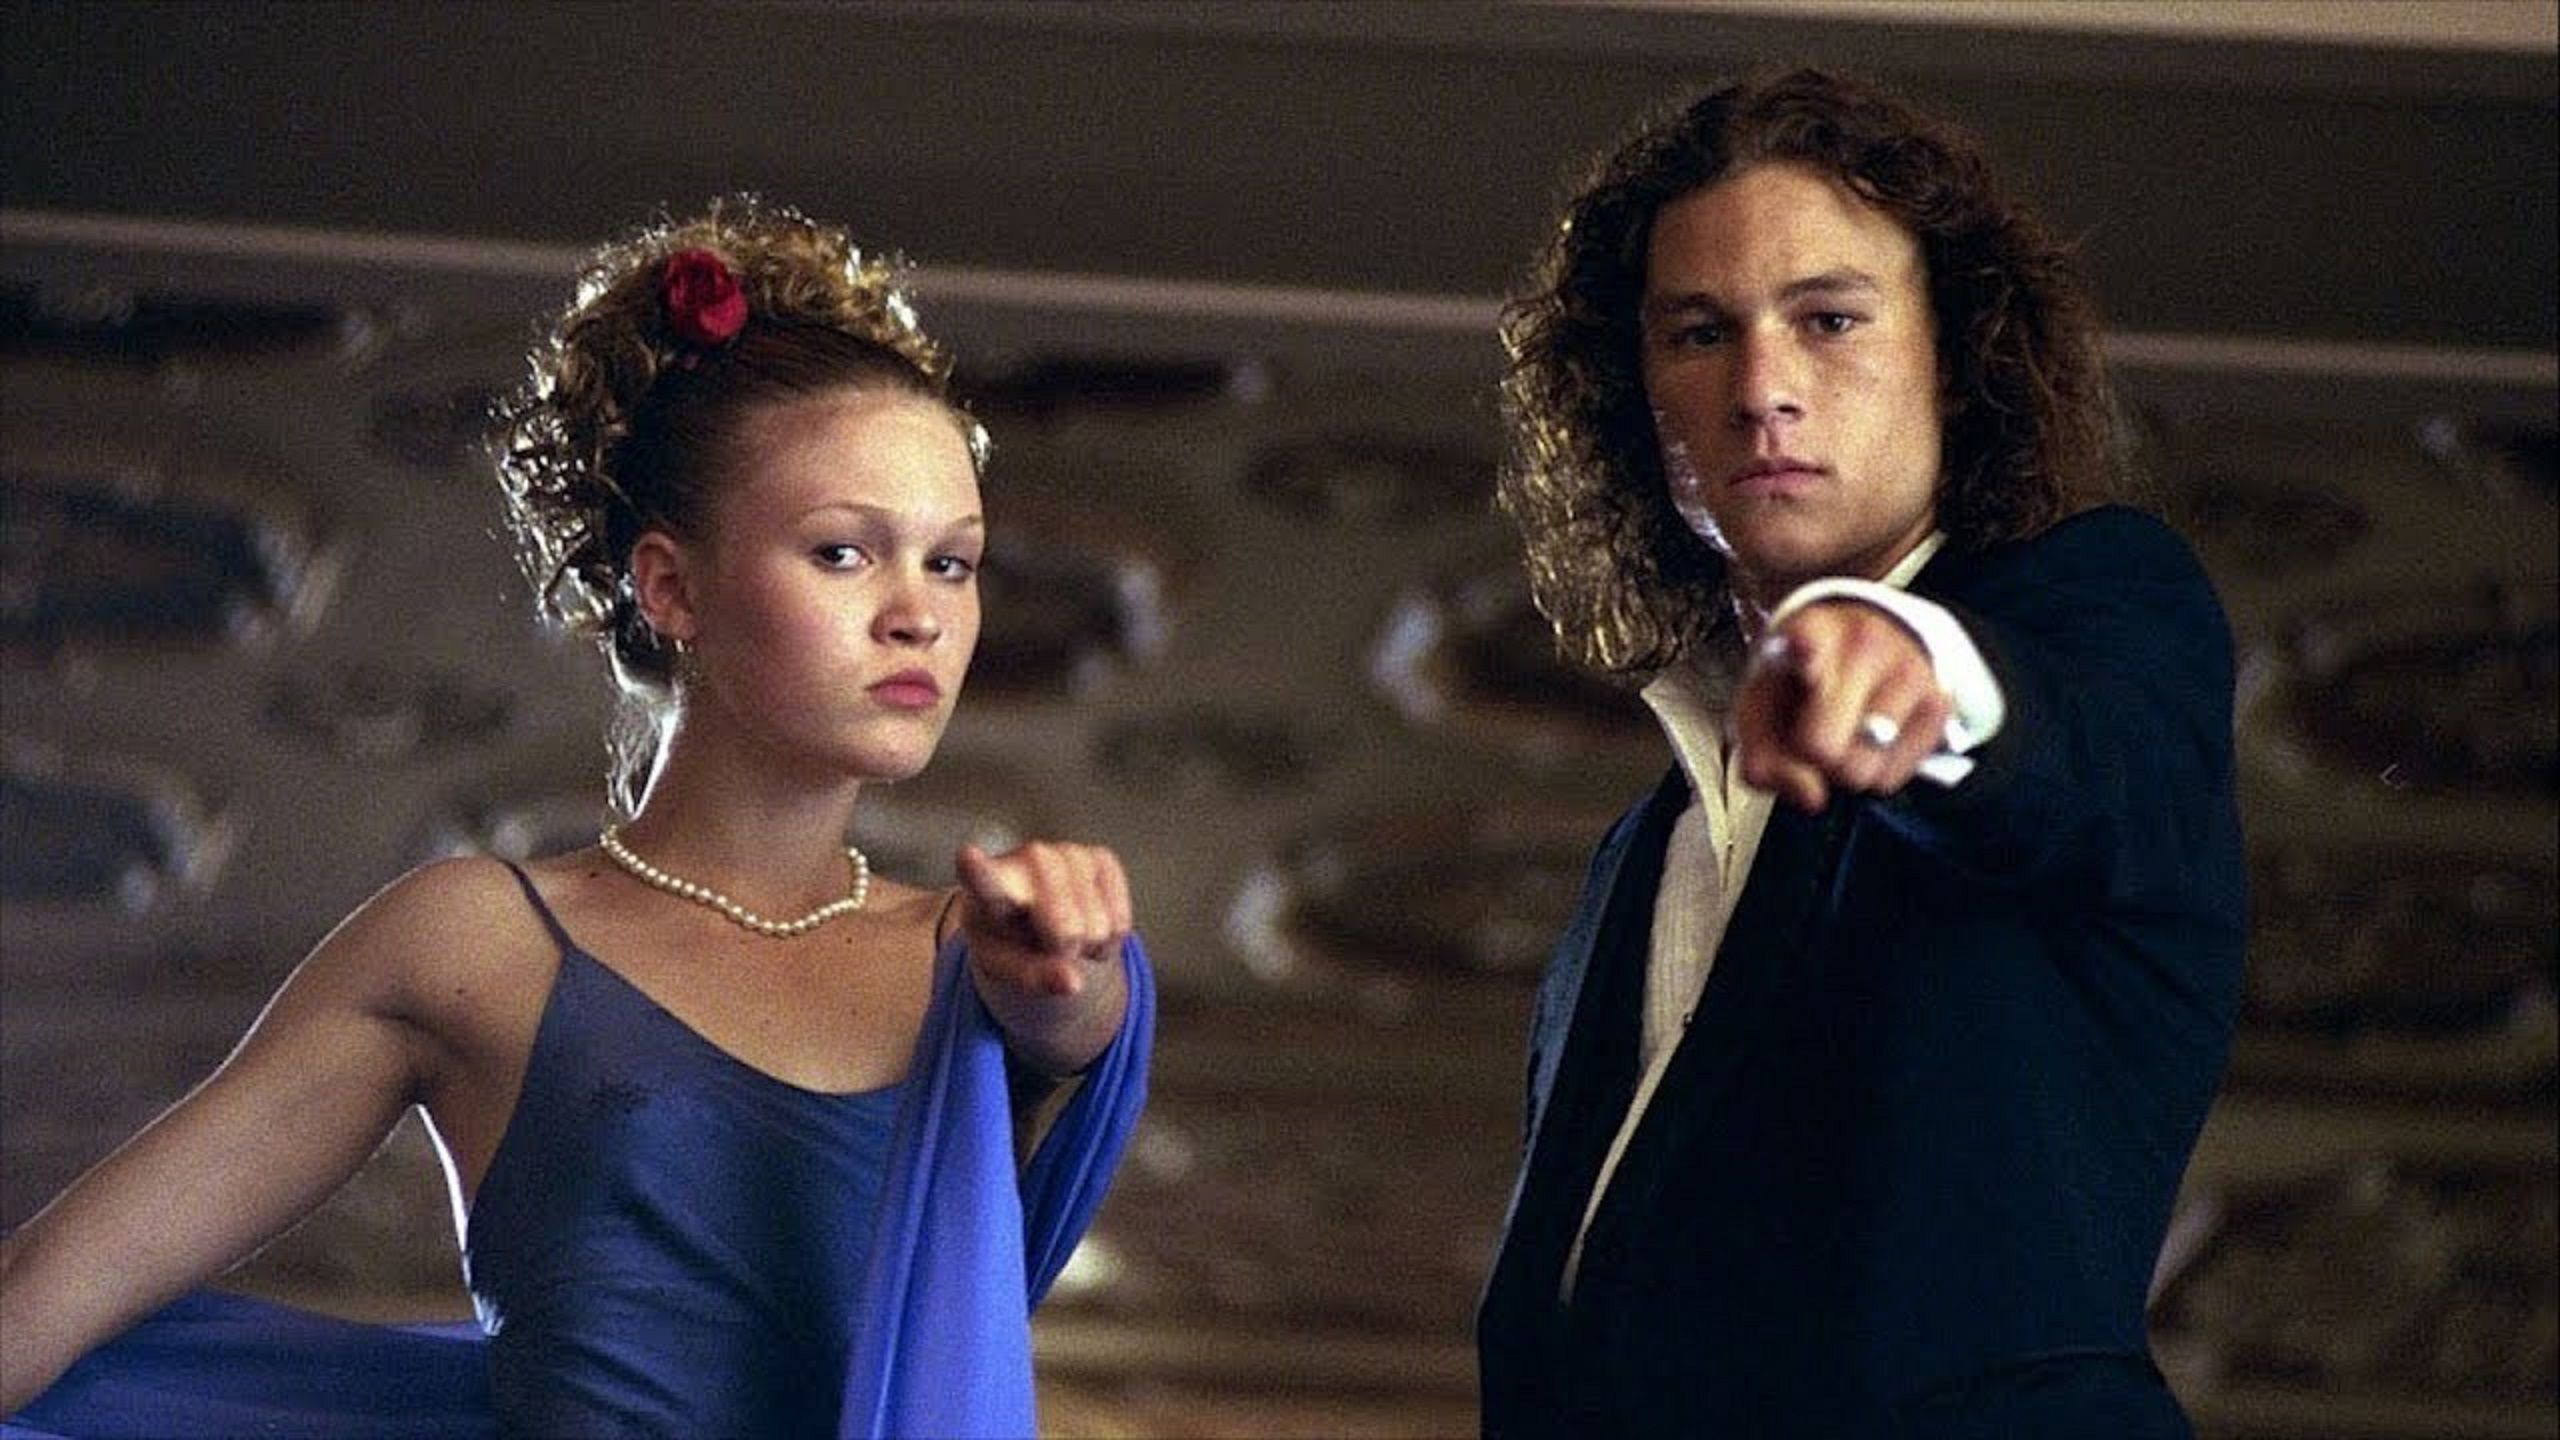 10 Things I hate about You - Kat Stratford (Julia Stiles) - Patrick Verona (Heath Ledger)